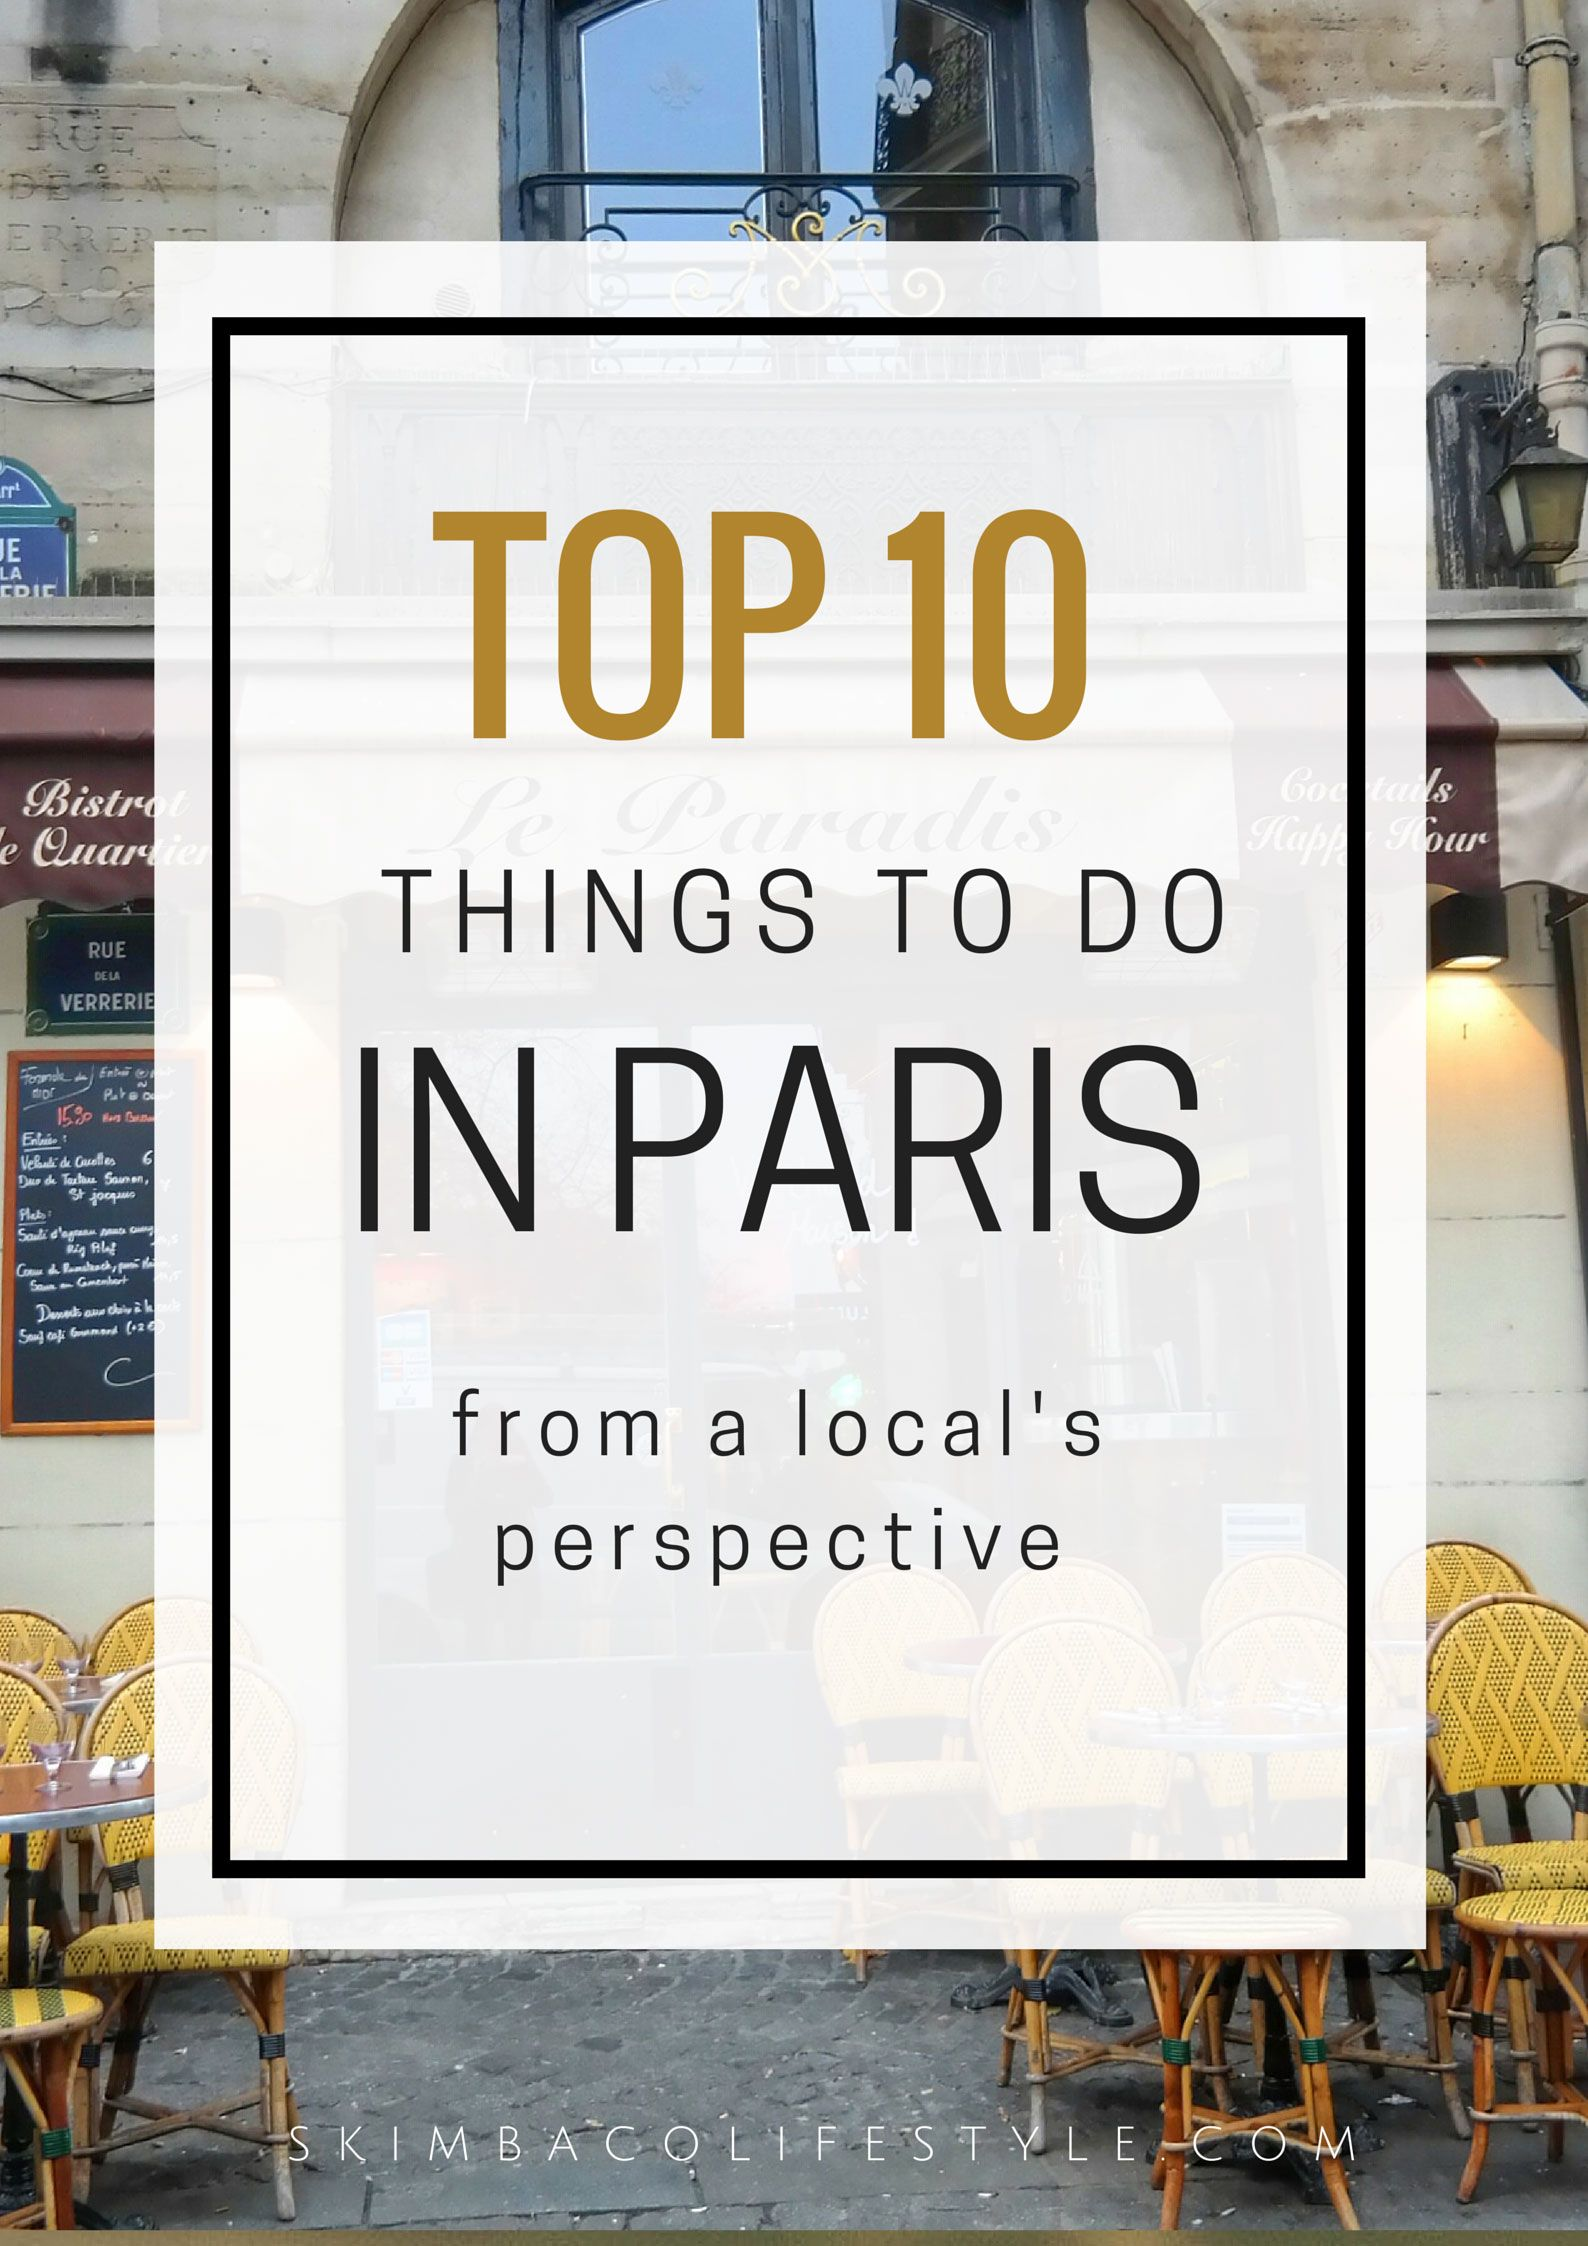 Top ten things to do in Paris from local's perspective. Avoid some of the most touristy things, and experience Paris like a local - a biking route around the city is included!